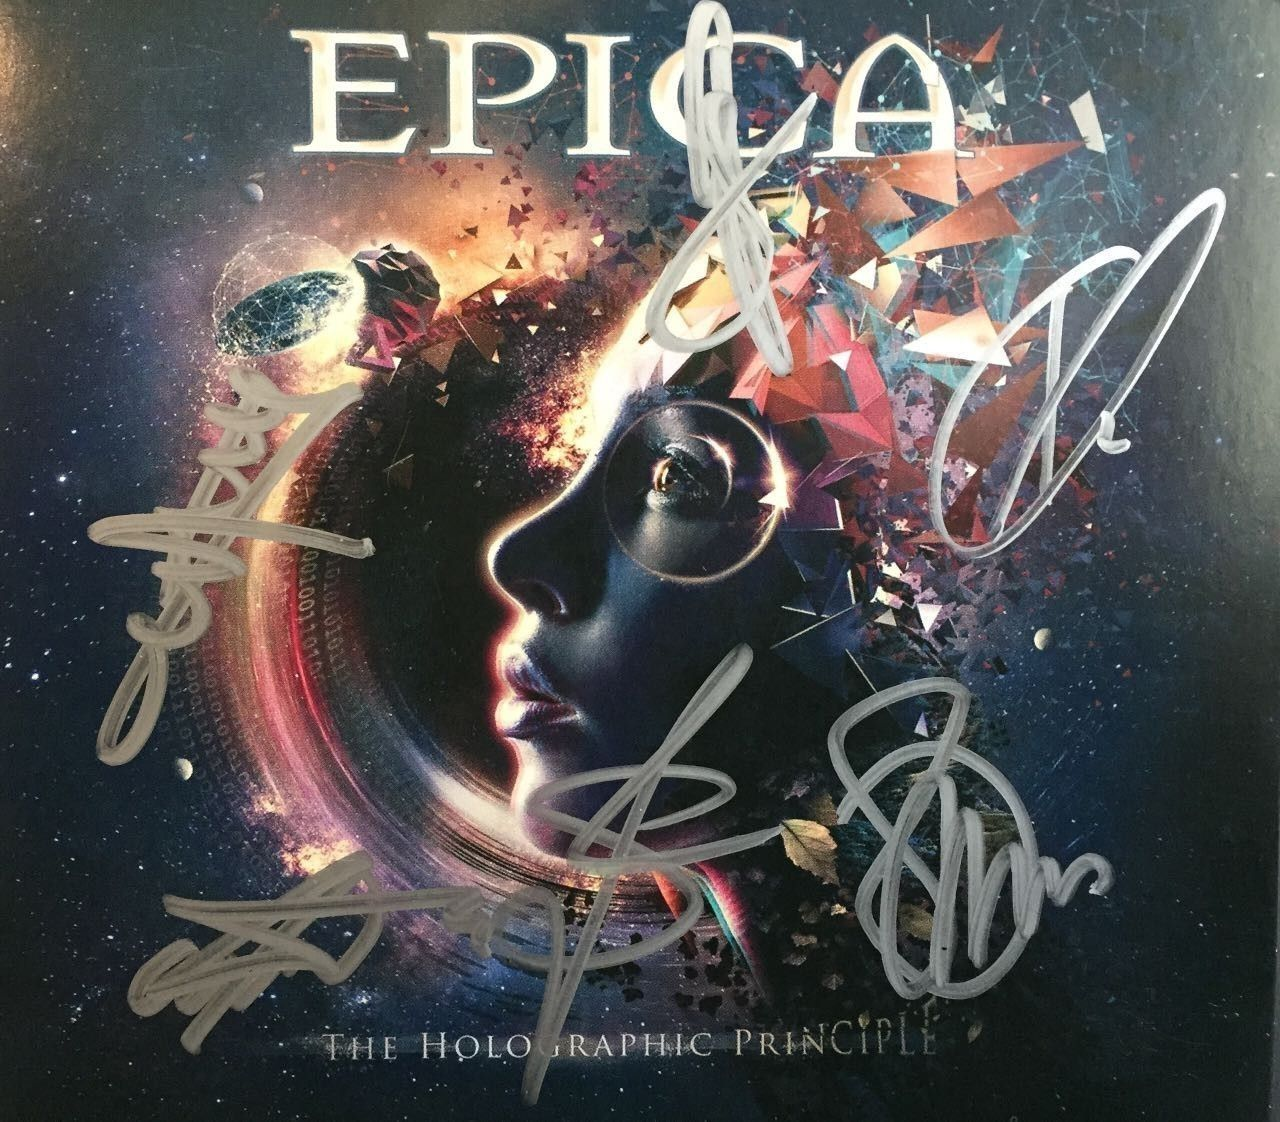 CD - Epica - The Holographic Principle - DUPLO - Autografado